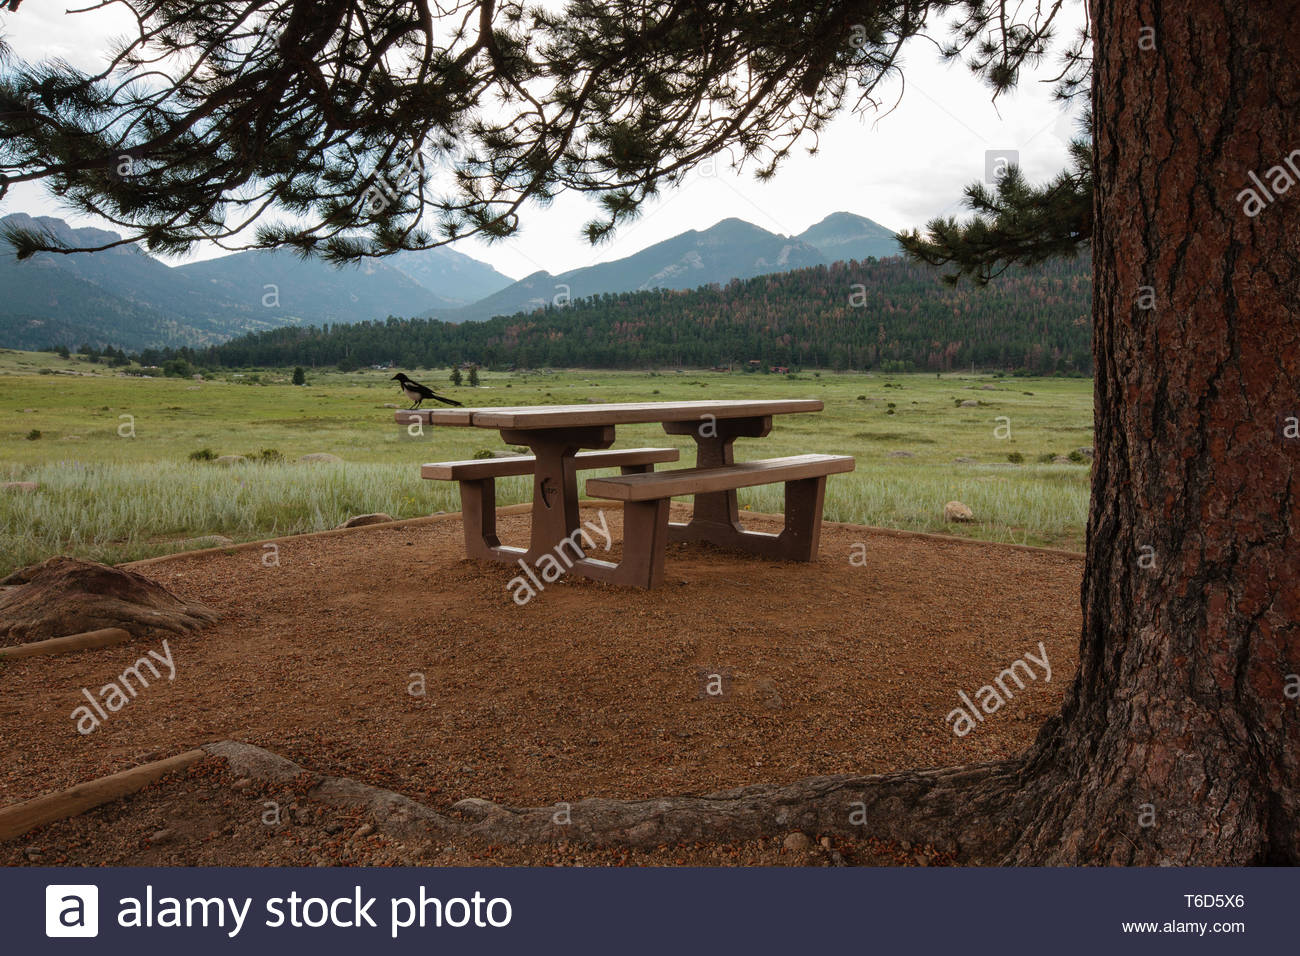 As the sky becomes more gray with an impending rain storm, a lone magpie is perched onto a solitary picnic table located under a tall ponderosa pine t - Stock Image